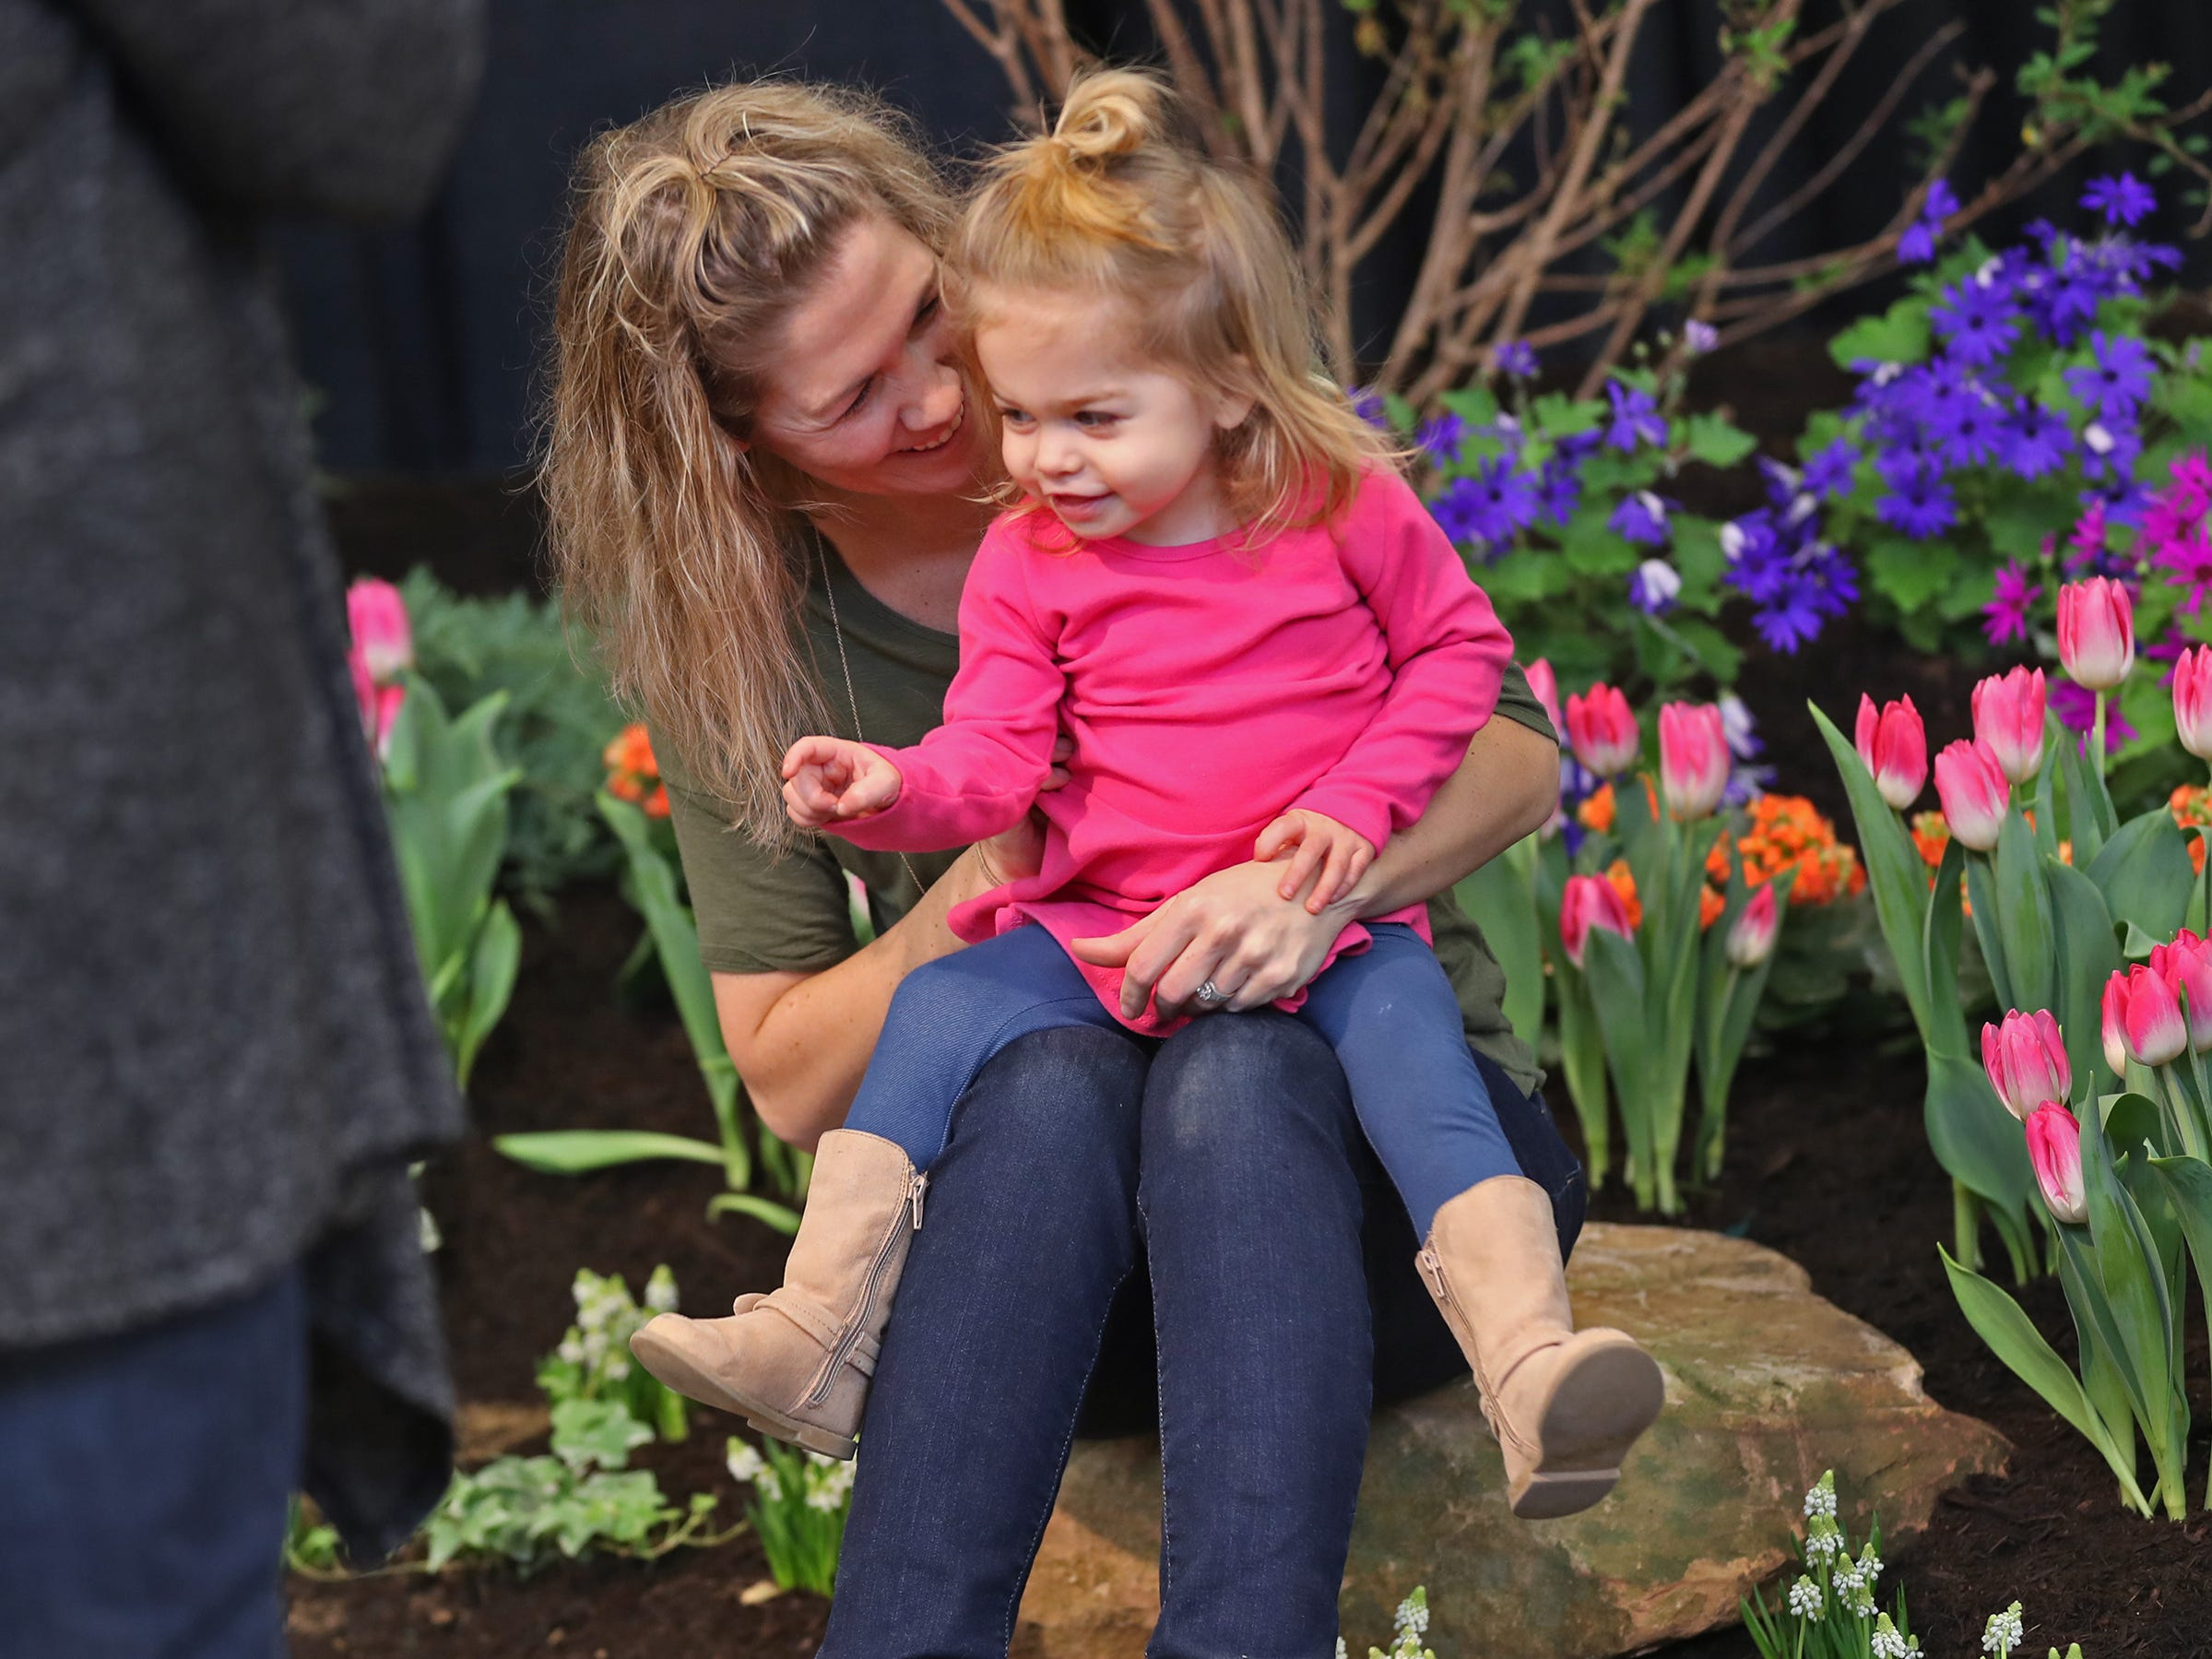 Rachel Drake poses for a photo with her daughter Delaney Drake, 2, against a colorful backdrop of the JDK Landscaping garden and patio, at the Indiana Flower + Patio Show, at the Indiana State Fairgrounds, Sunday, March 10, 2019.